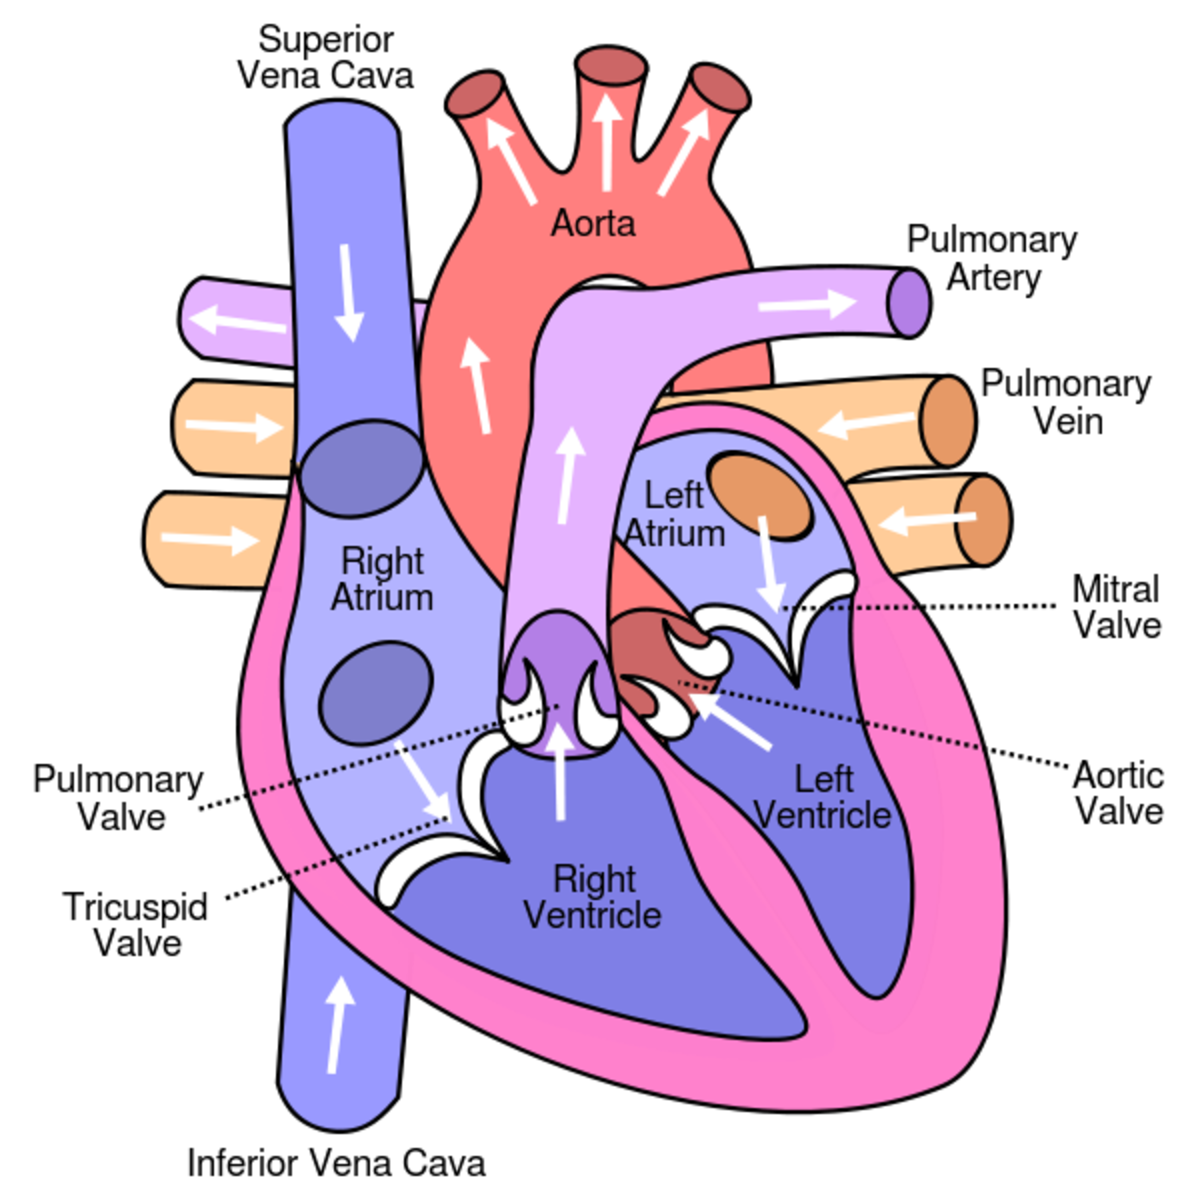 multiple-choice-questions-on-the-anatomy-of-heart